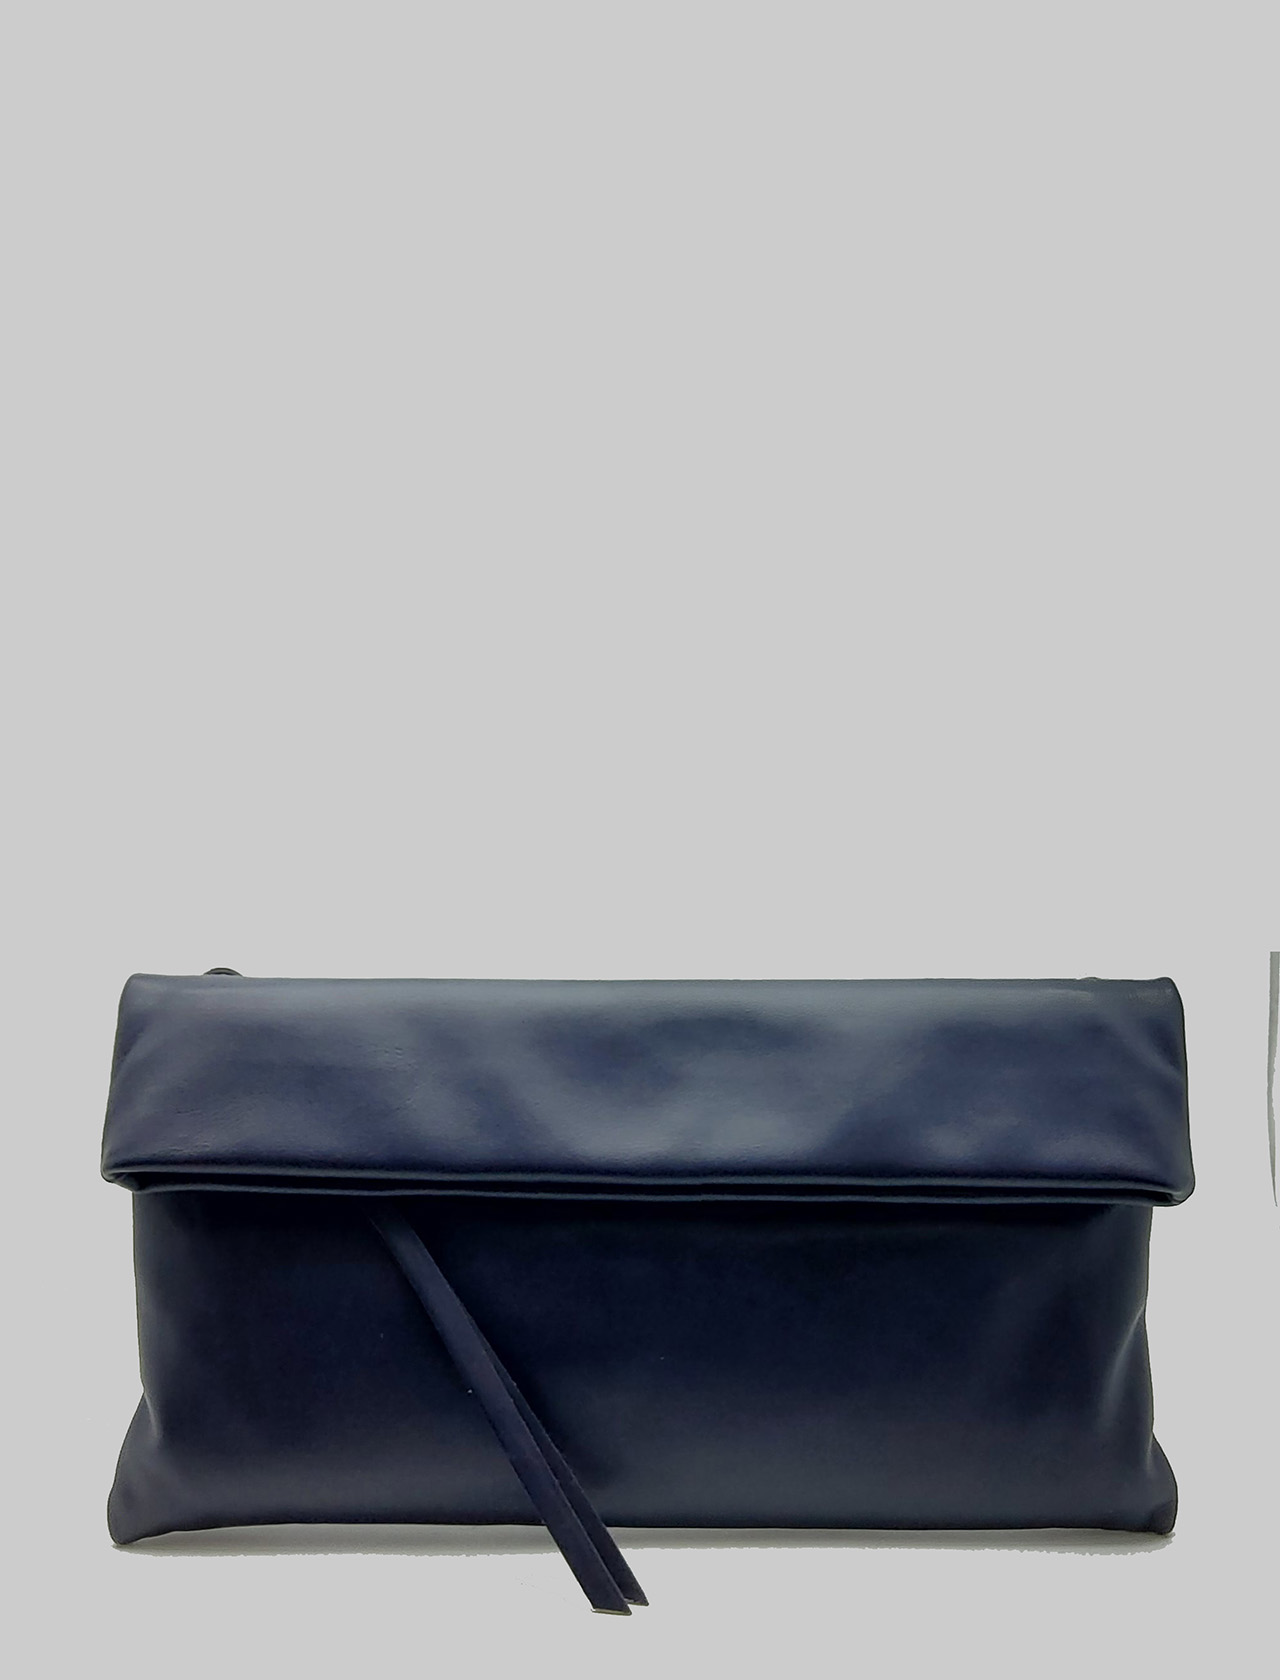 Cherry Women's Clutch Bag In Blue Smooth Leather With Tone Removable Shoulder Strap Gianni Chiarini | Bags and backpacks | BS737511385